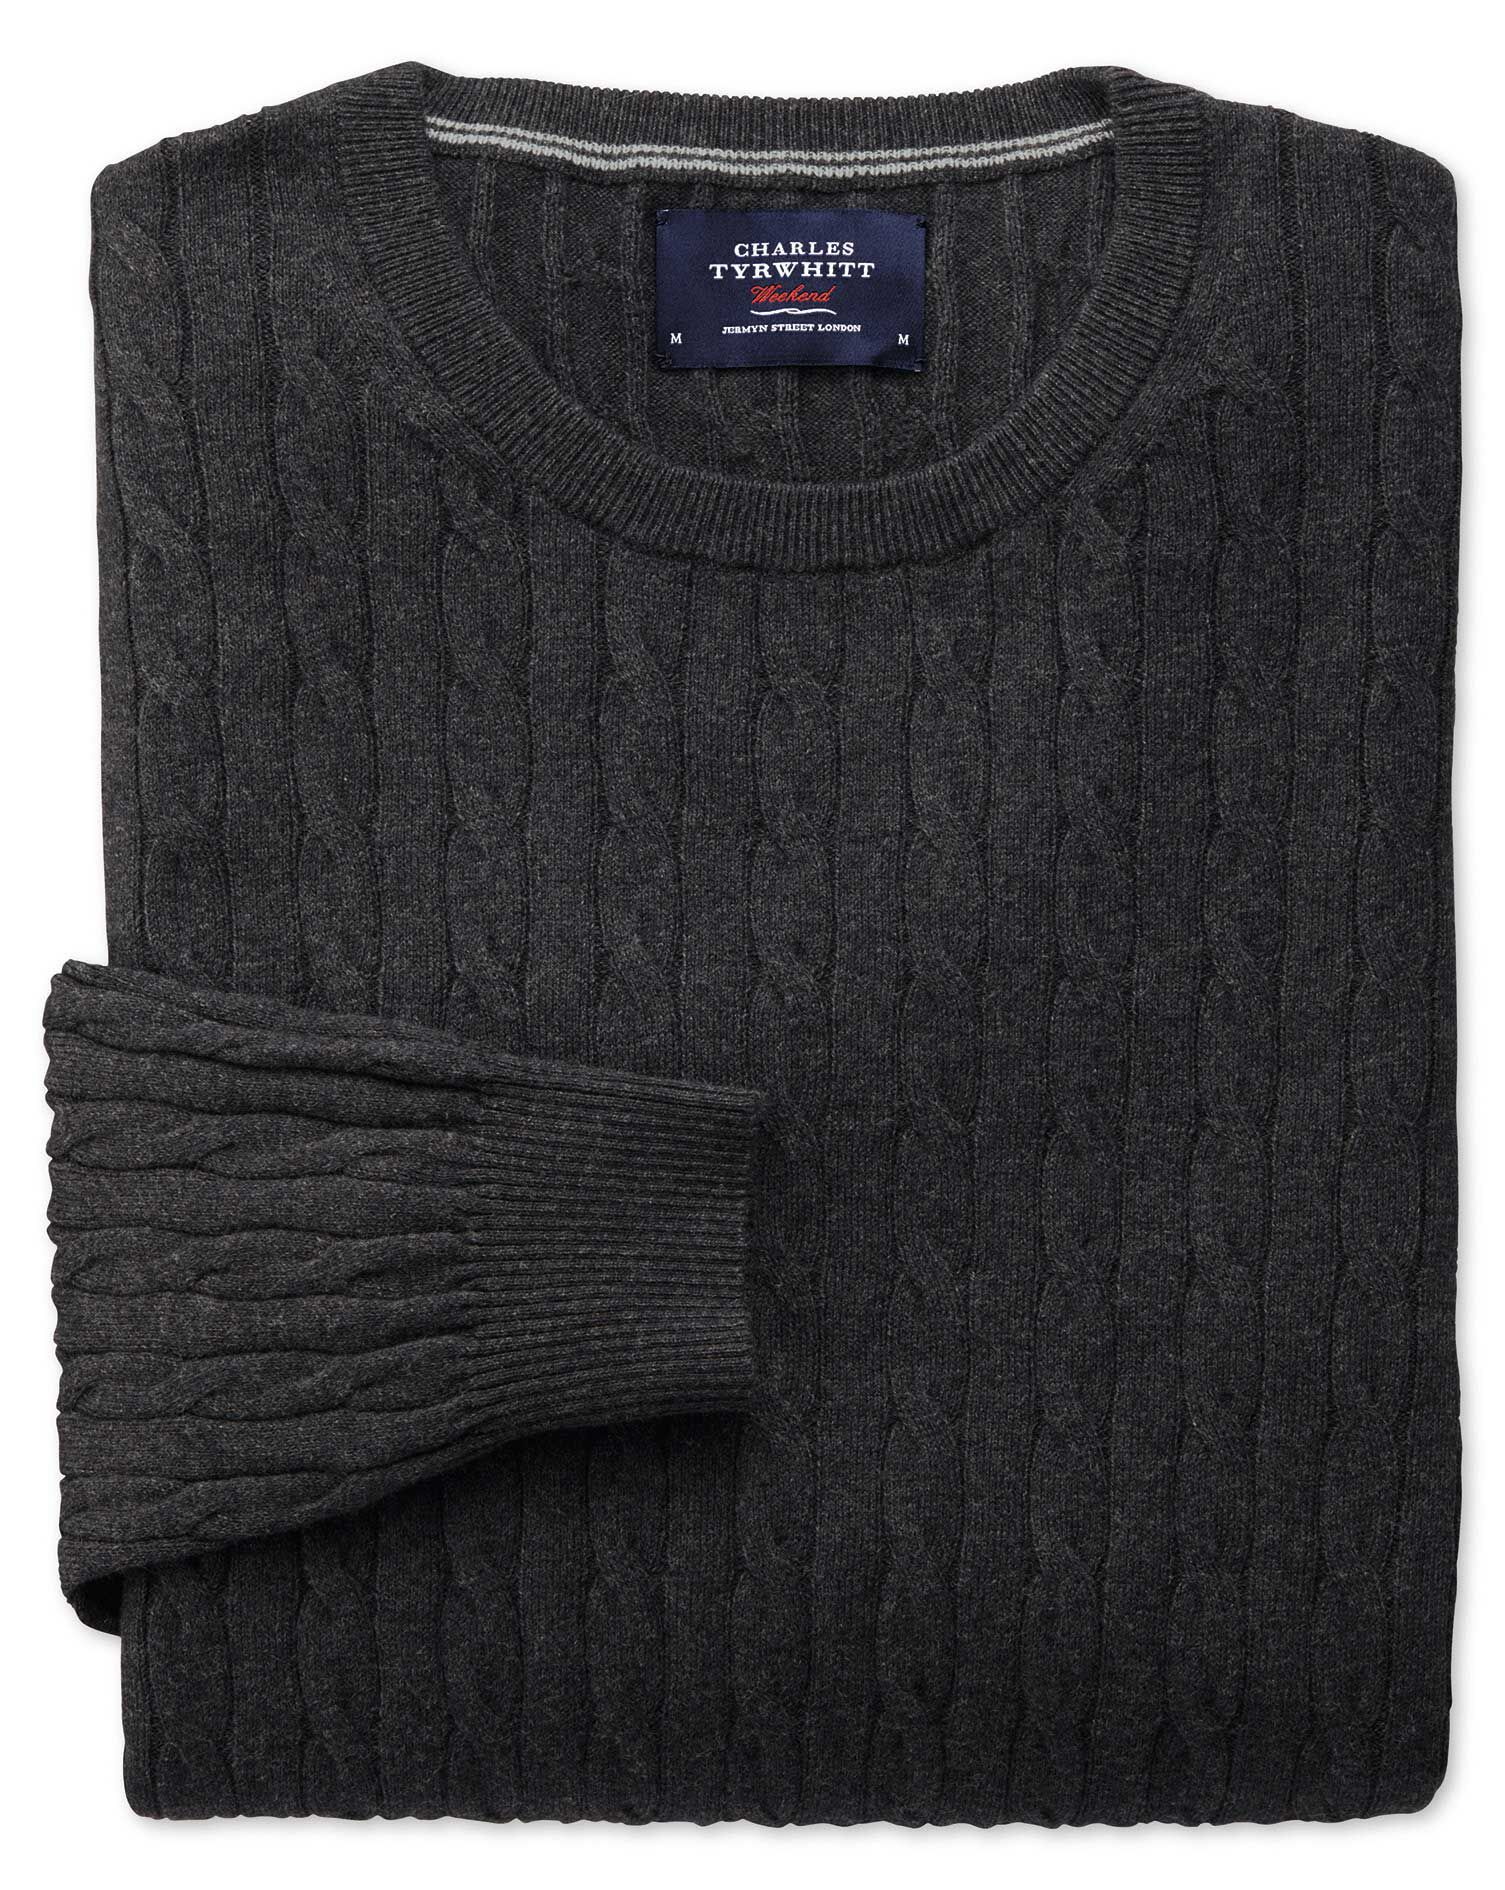 Charcoal Cotton Cashmere Cable Crew Neck Jumper Size XL by Charles Tyrwhitt